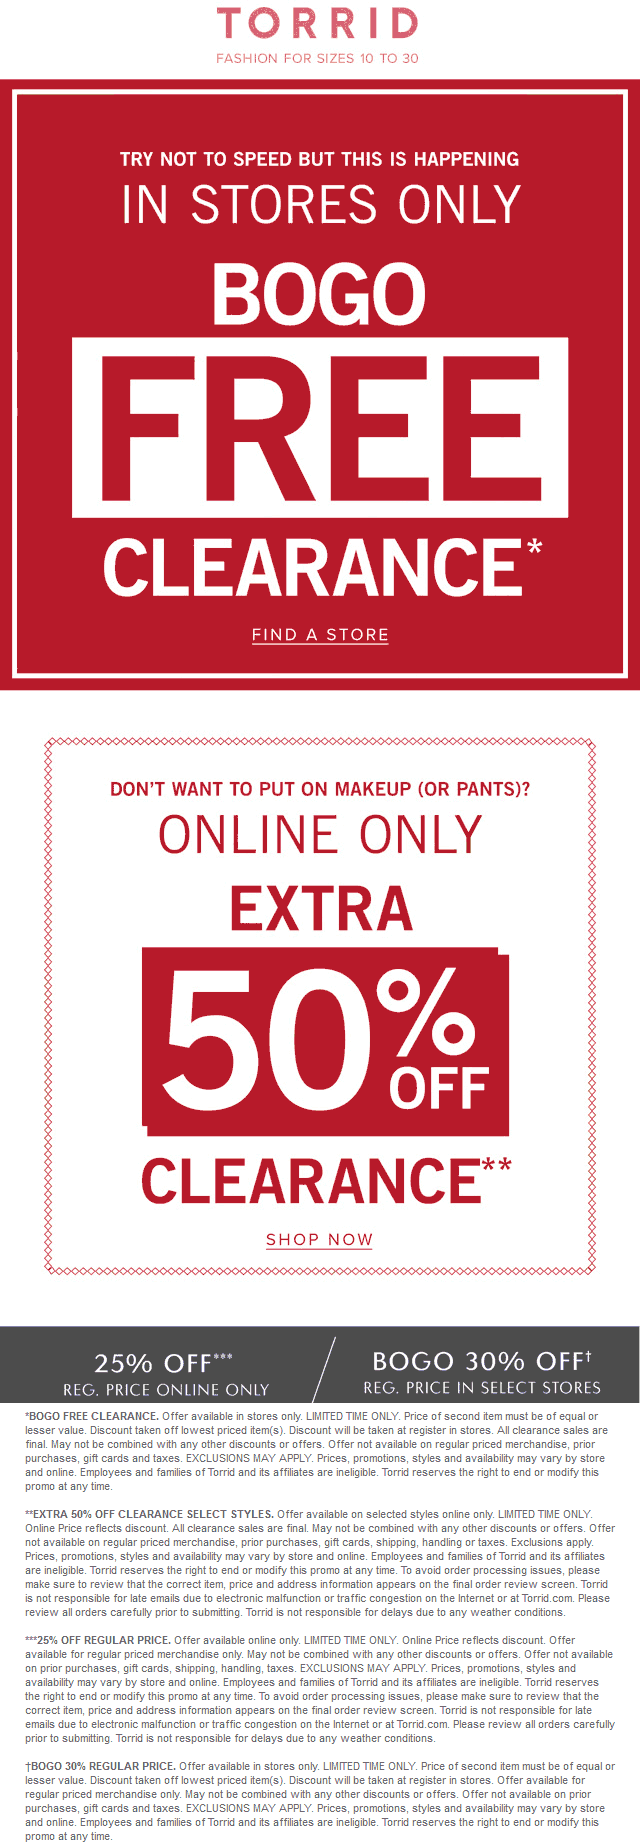 Torrid.com Promo Coupon Second clearance item free & more at Torrid, or second 50% off online